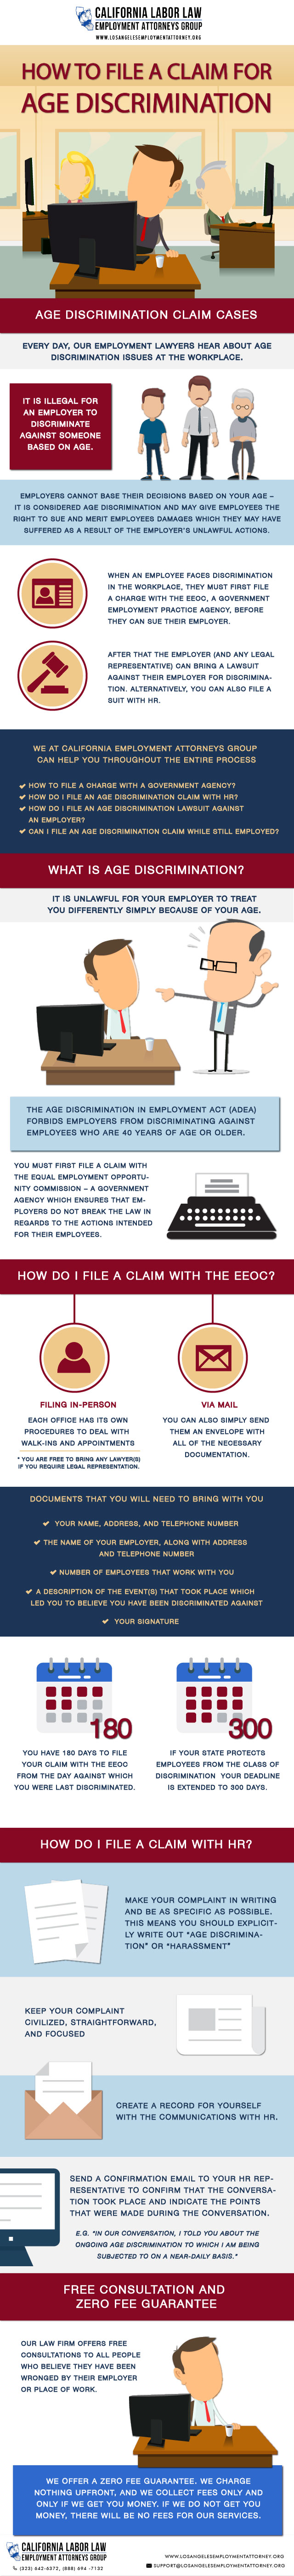 How to File a Claim for Age Discrimination